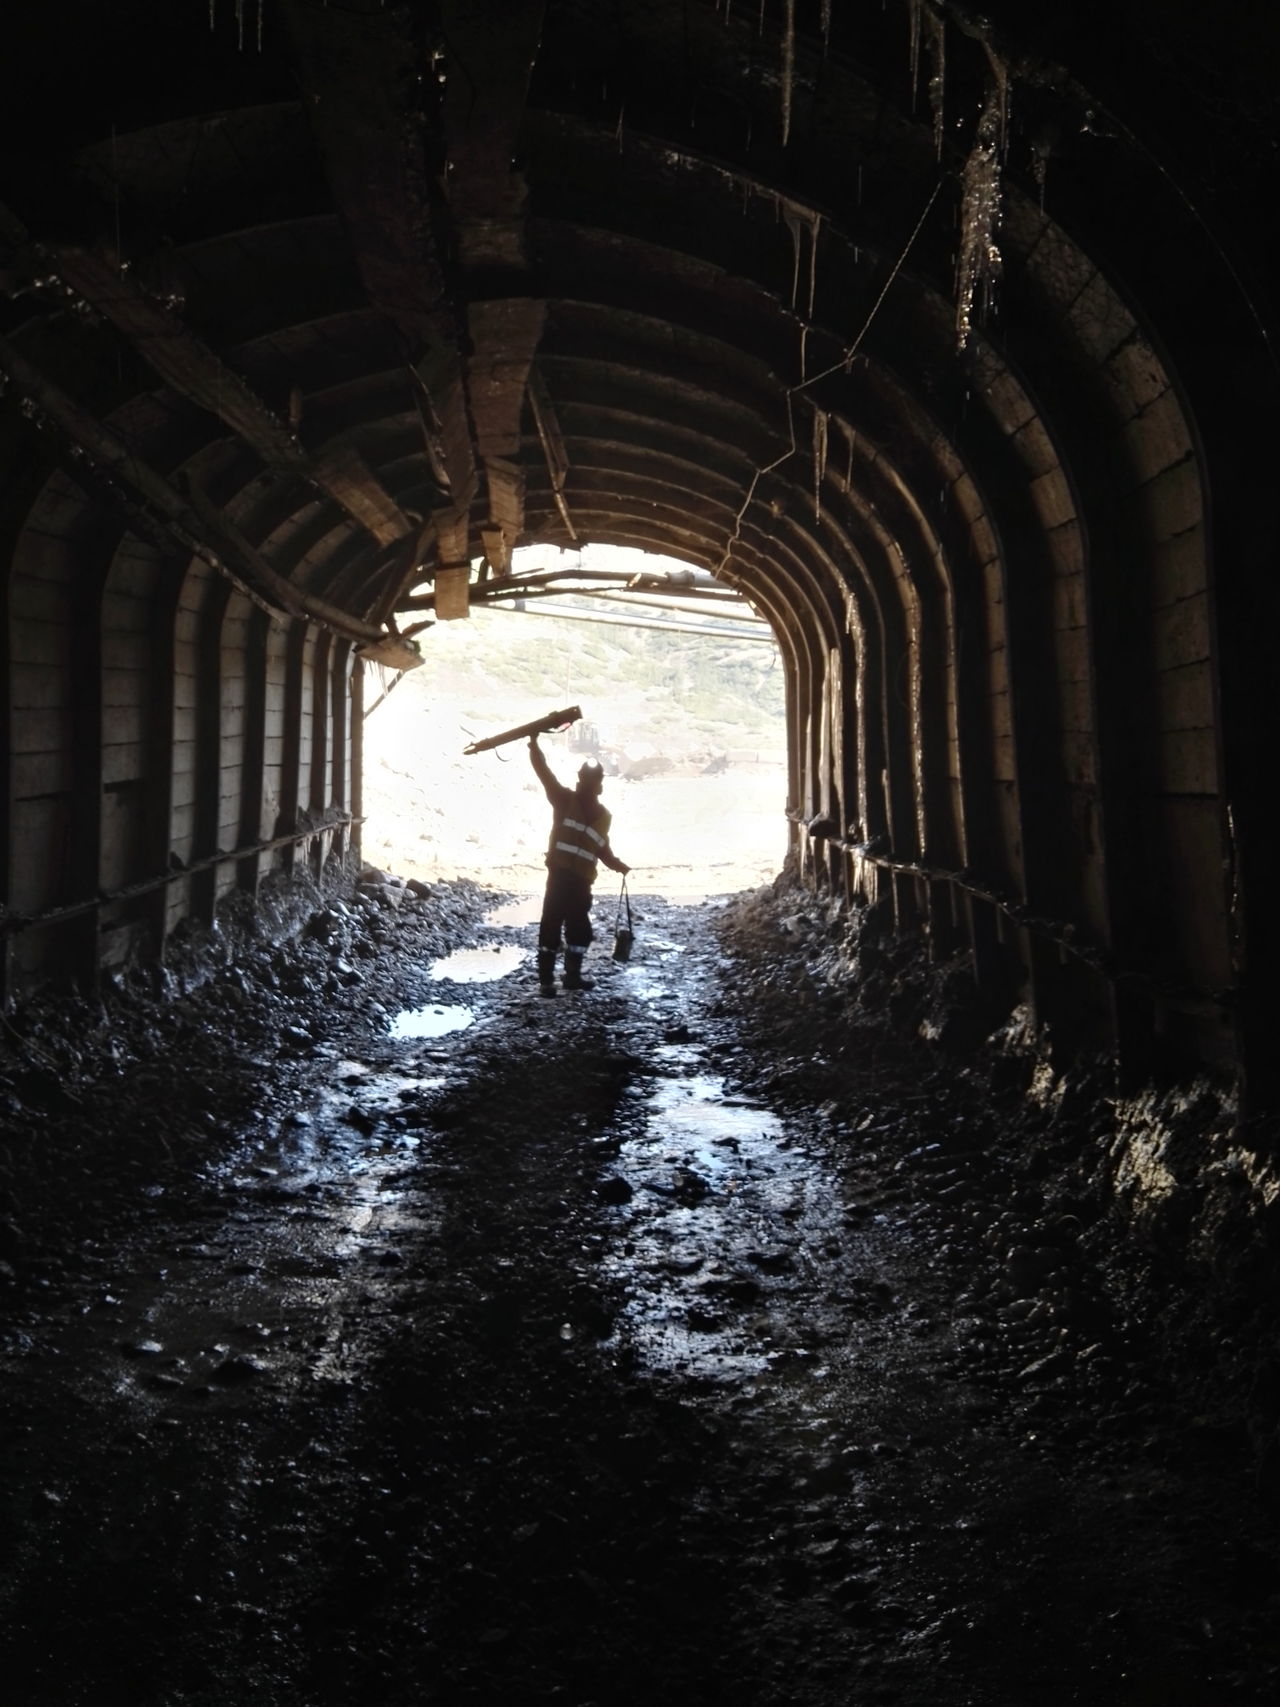 Alive  Dark Darkness Darkness And Light Dirty Engineering Figure Full Length Icicles Industry Light Mine Mining Mining Industry Mountain One Person Outline Real People Road Shadow Shadows & Lights Silhouette Tunnel Worker Workers